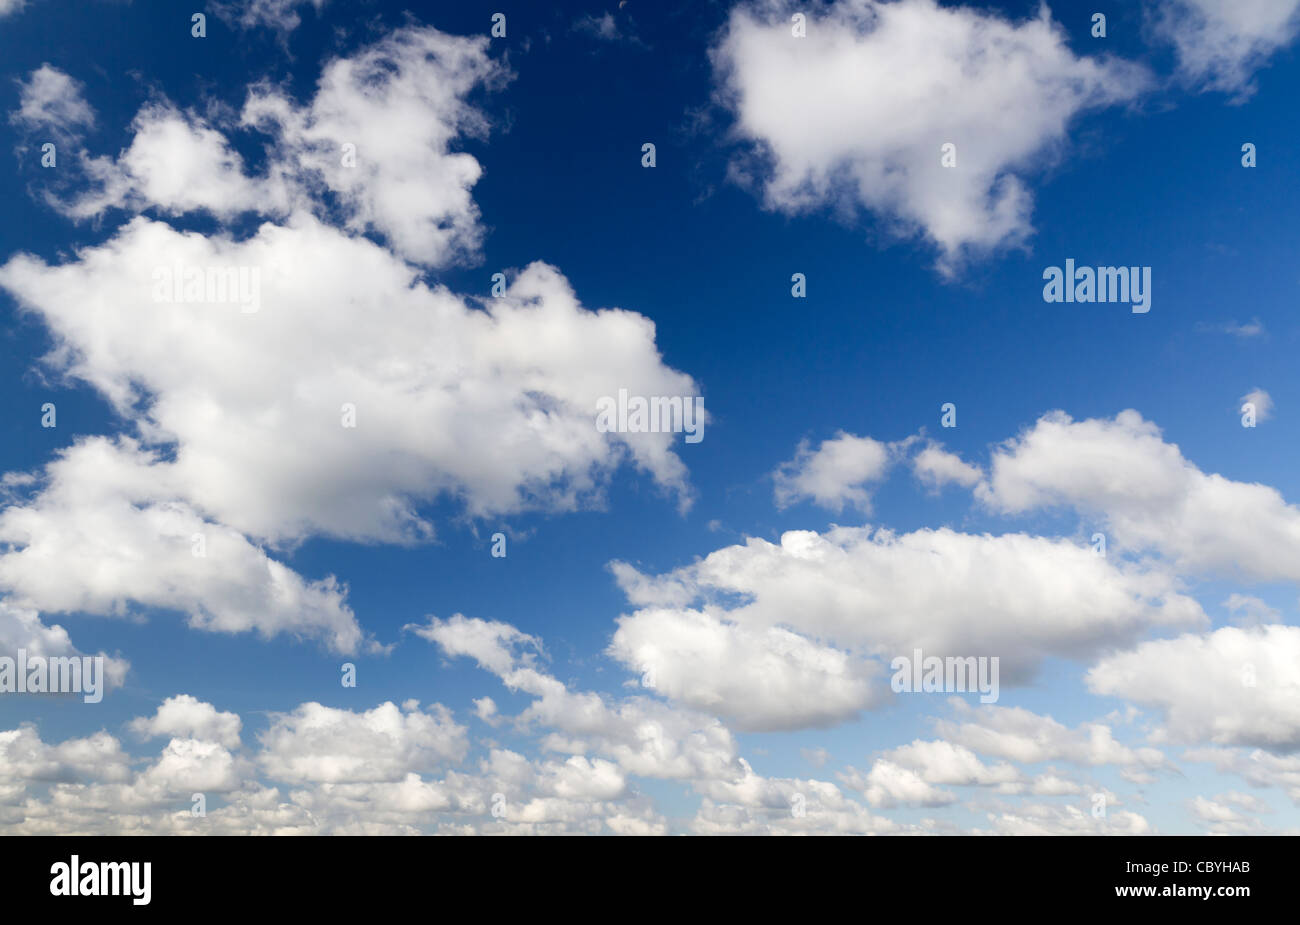 Clouds on a summers day - Stock Image